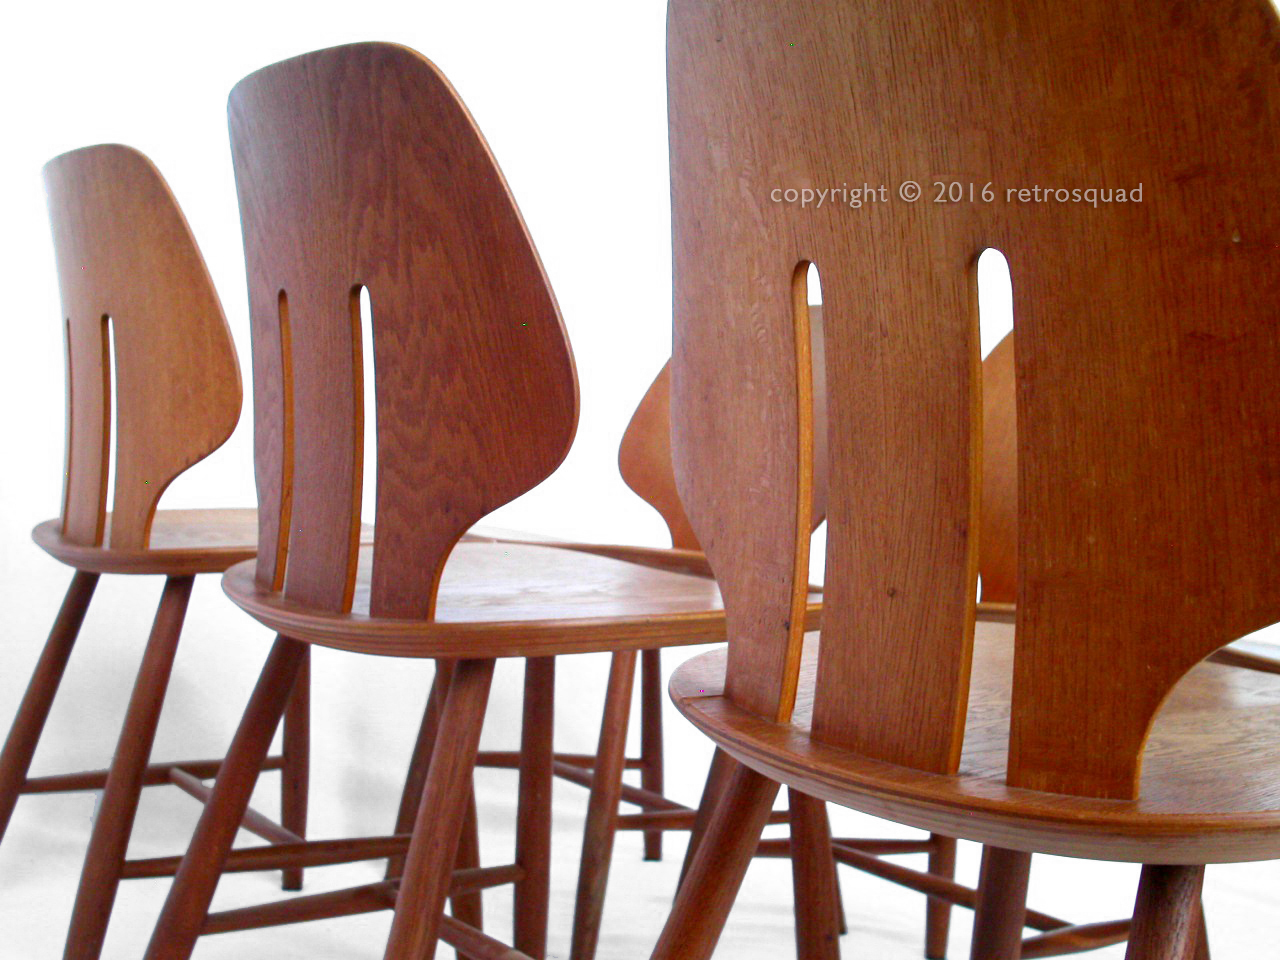 6 Modern Dining Chairs By Ejvind A. Johanss For FDB Mobler Vintage 1960 08